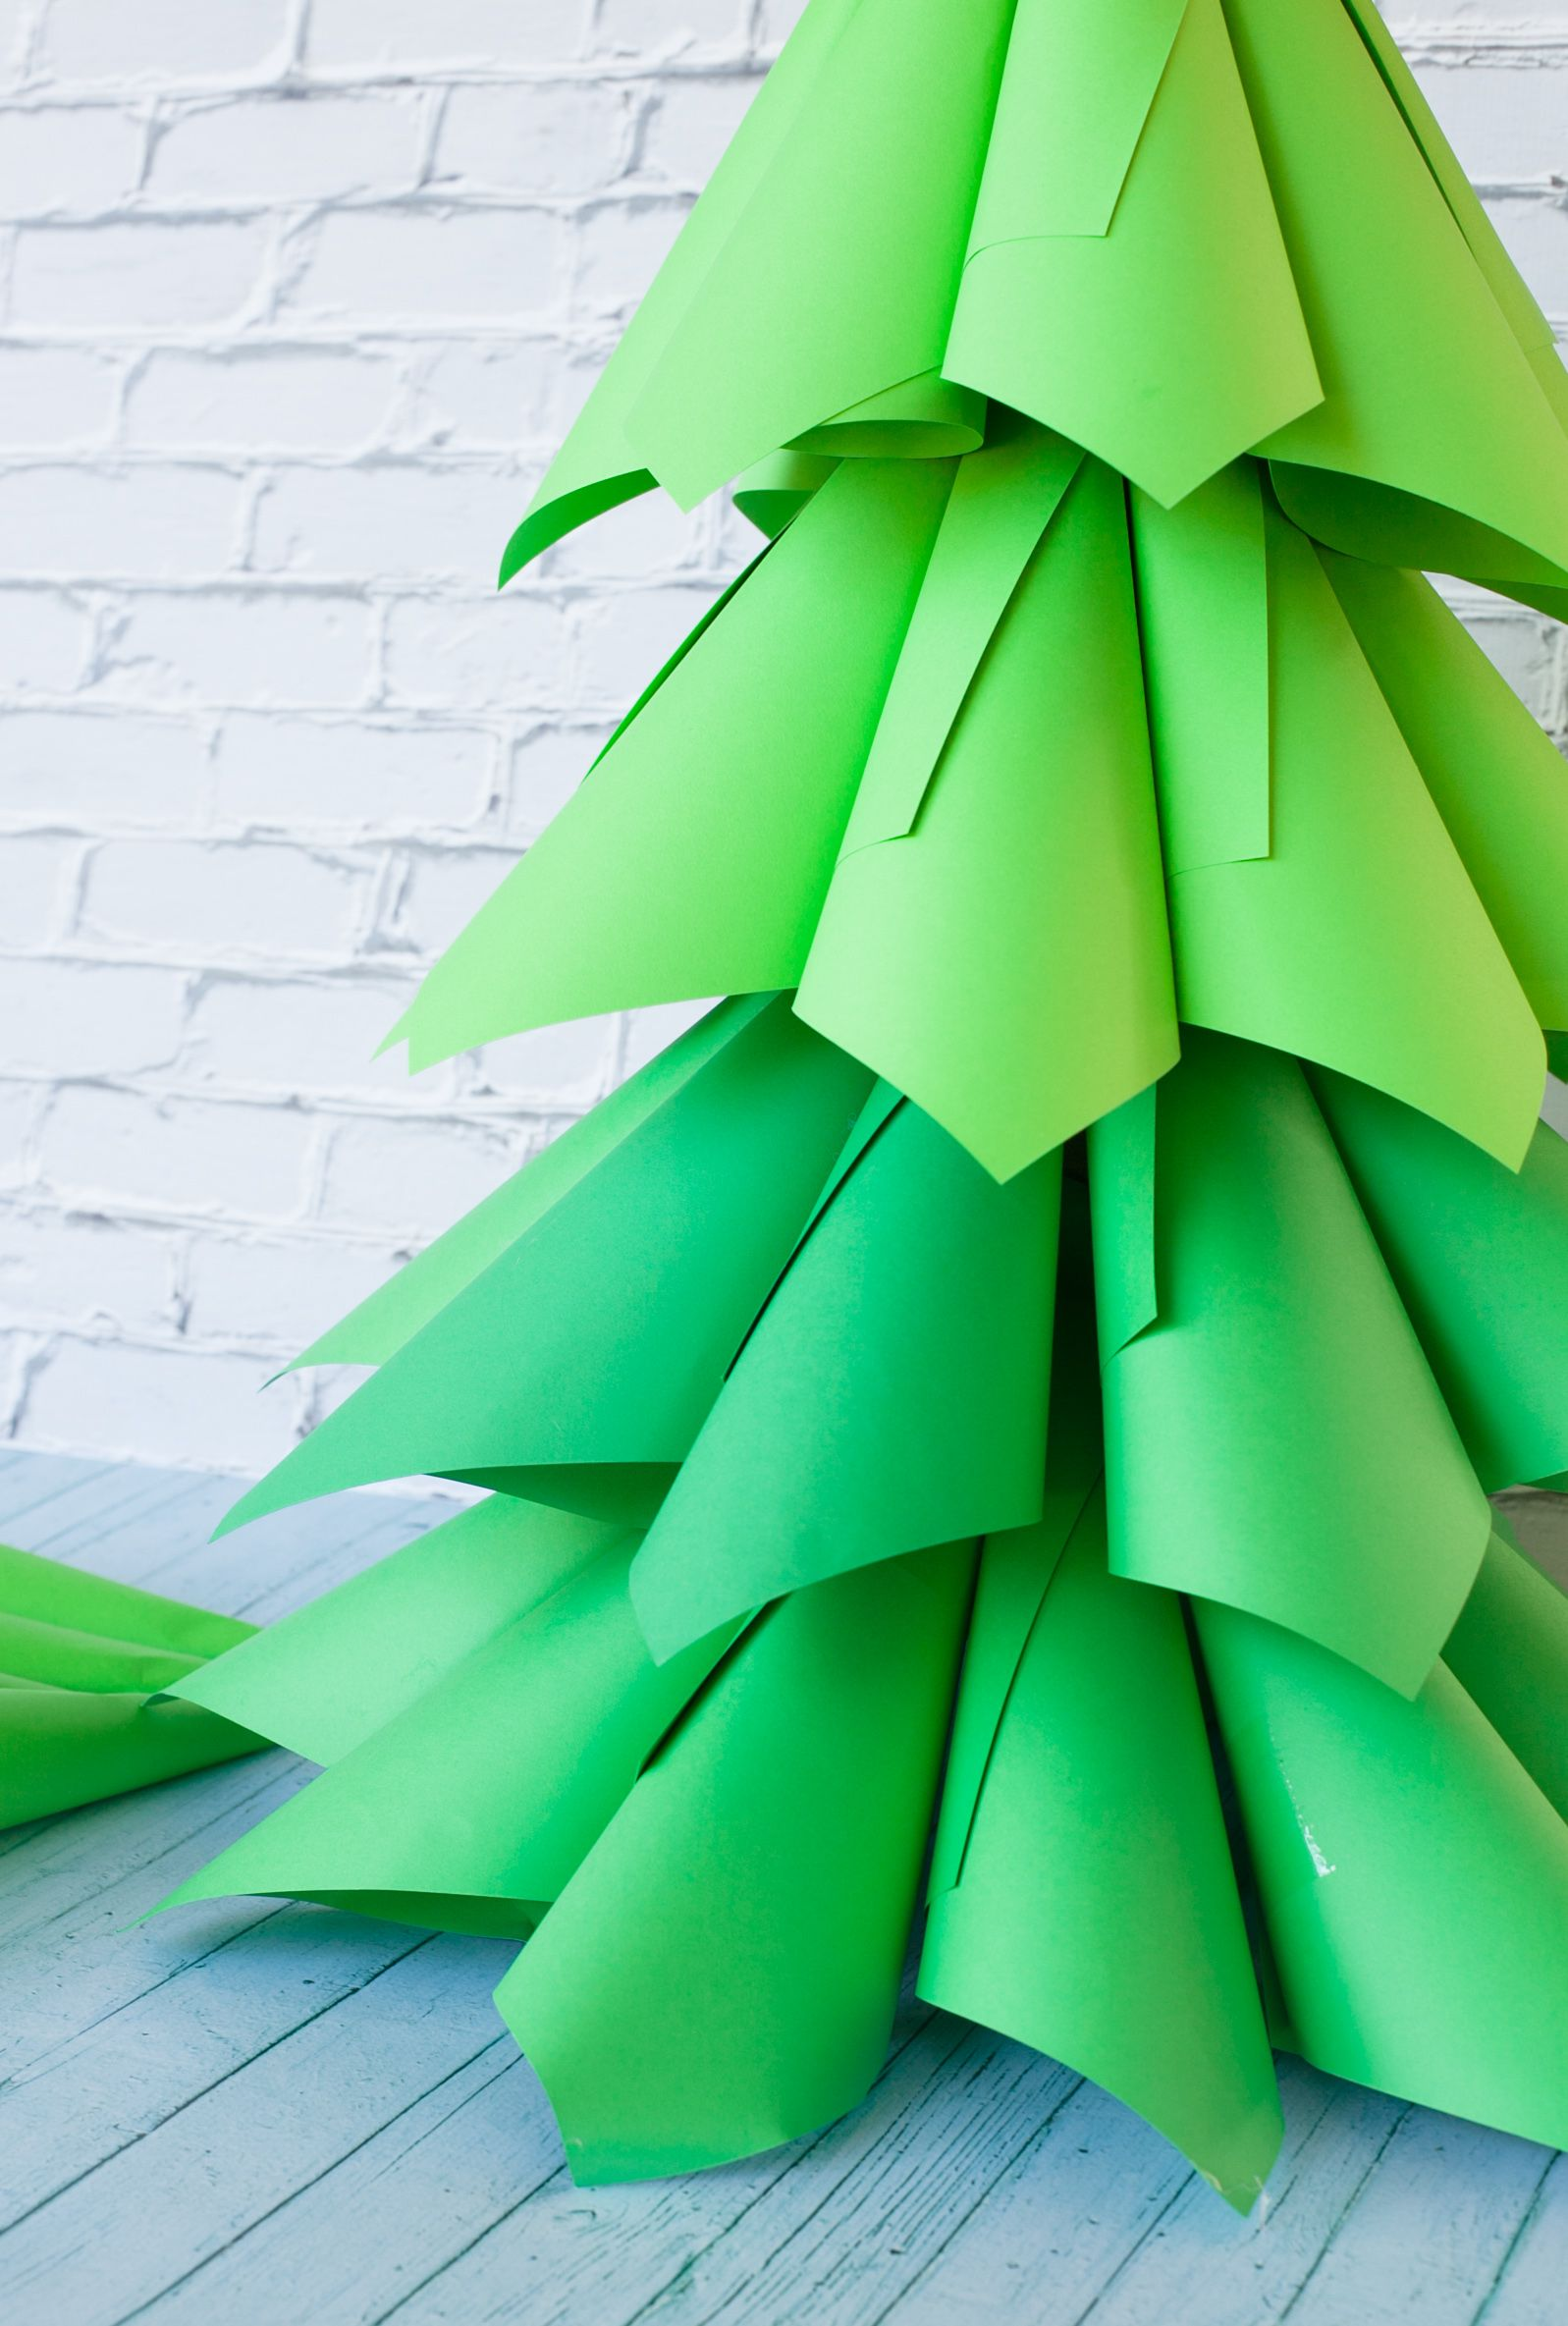 How to make a christmas decoration out of paper - Giant Ombre Paper Cone Christmas Trees A Diy Tutorial And How To